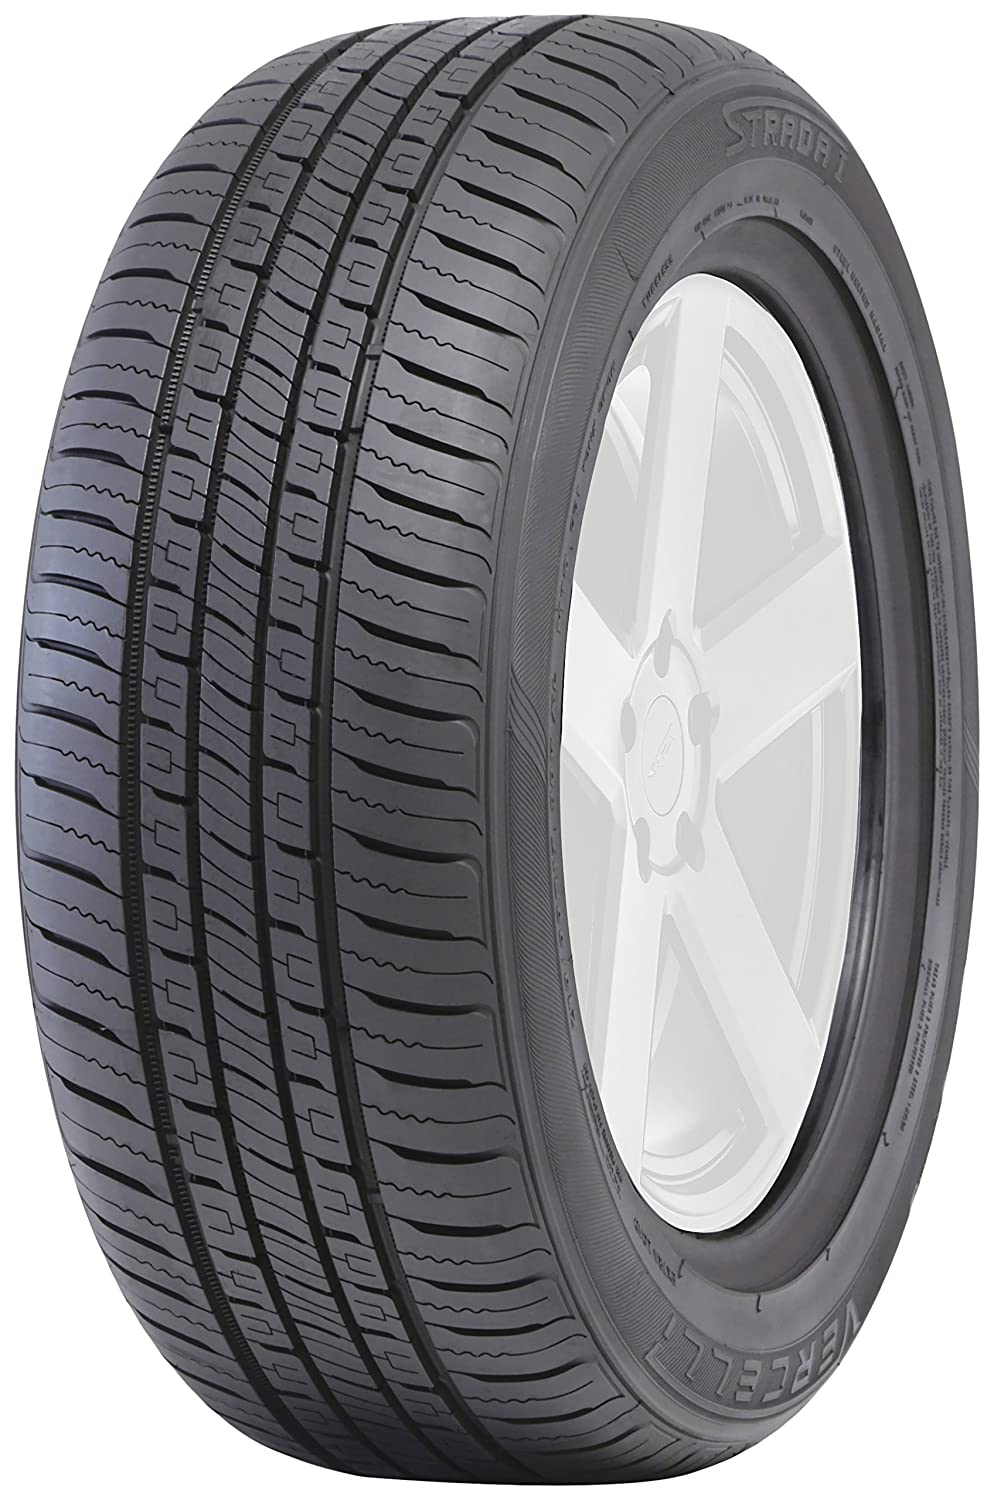 Vercelli VC692 Strada 1 All Season Tire - 225-55R19 99V